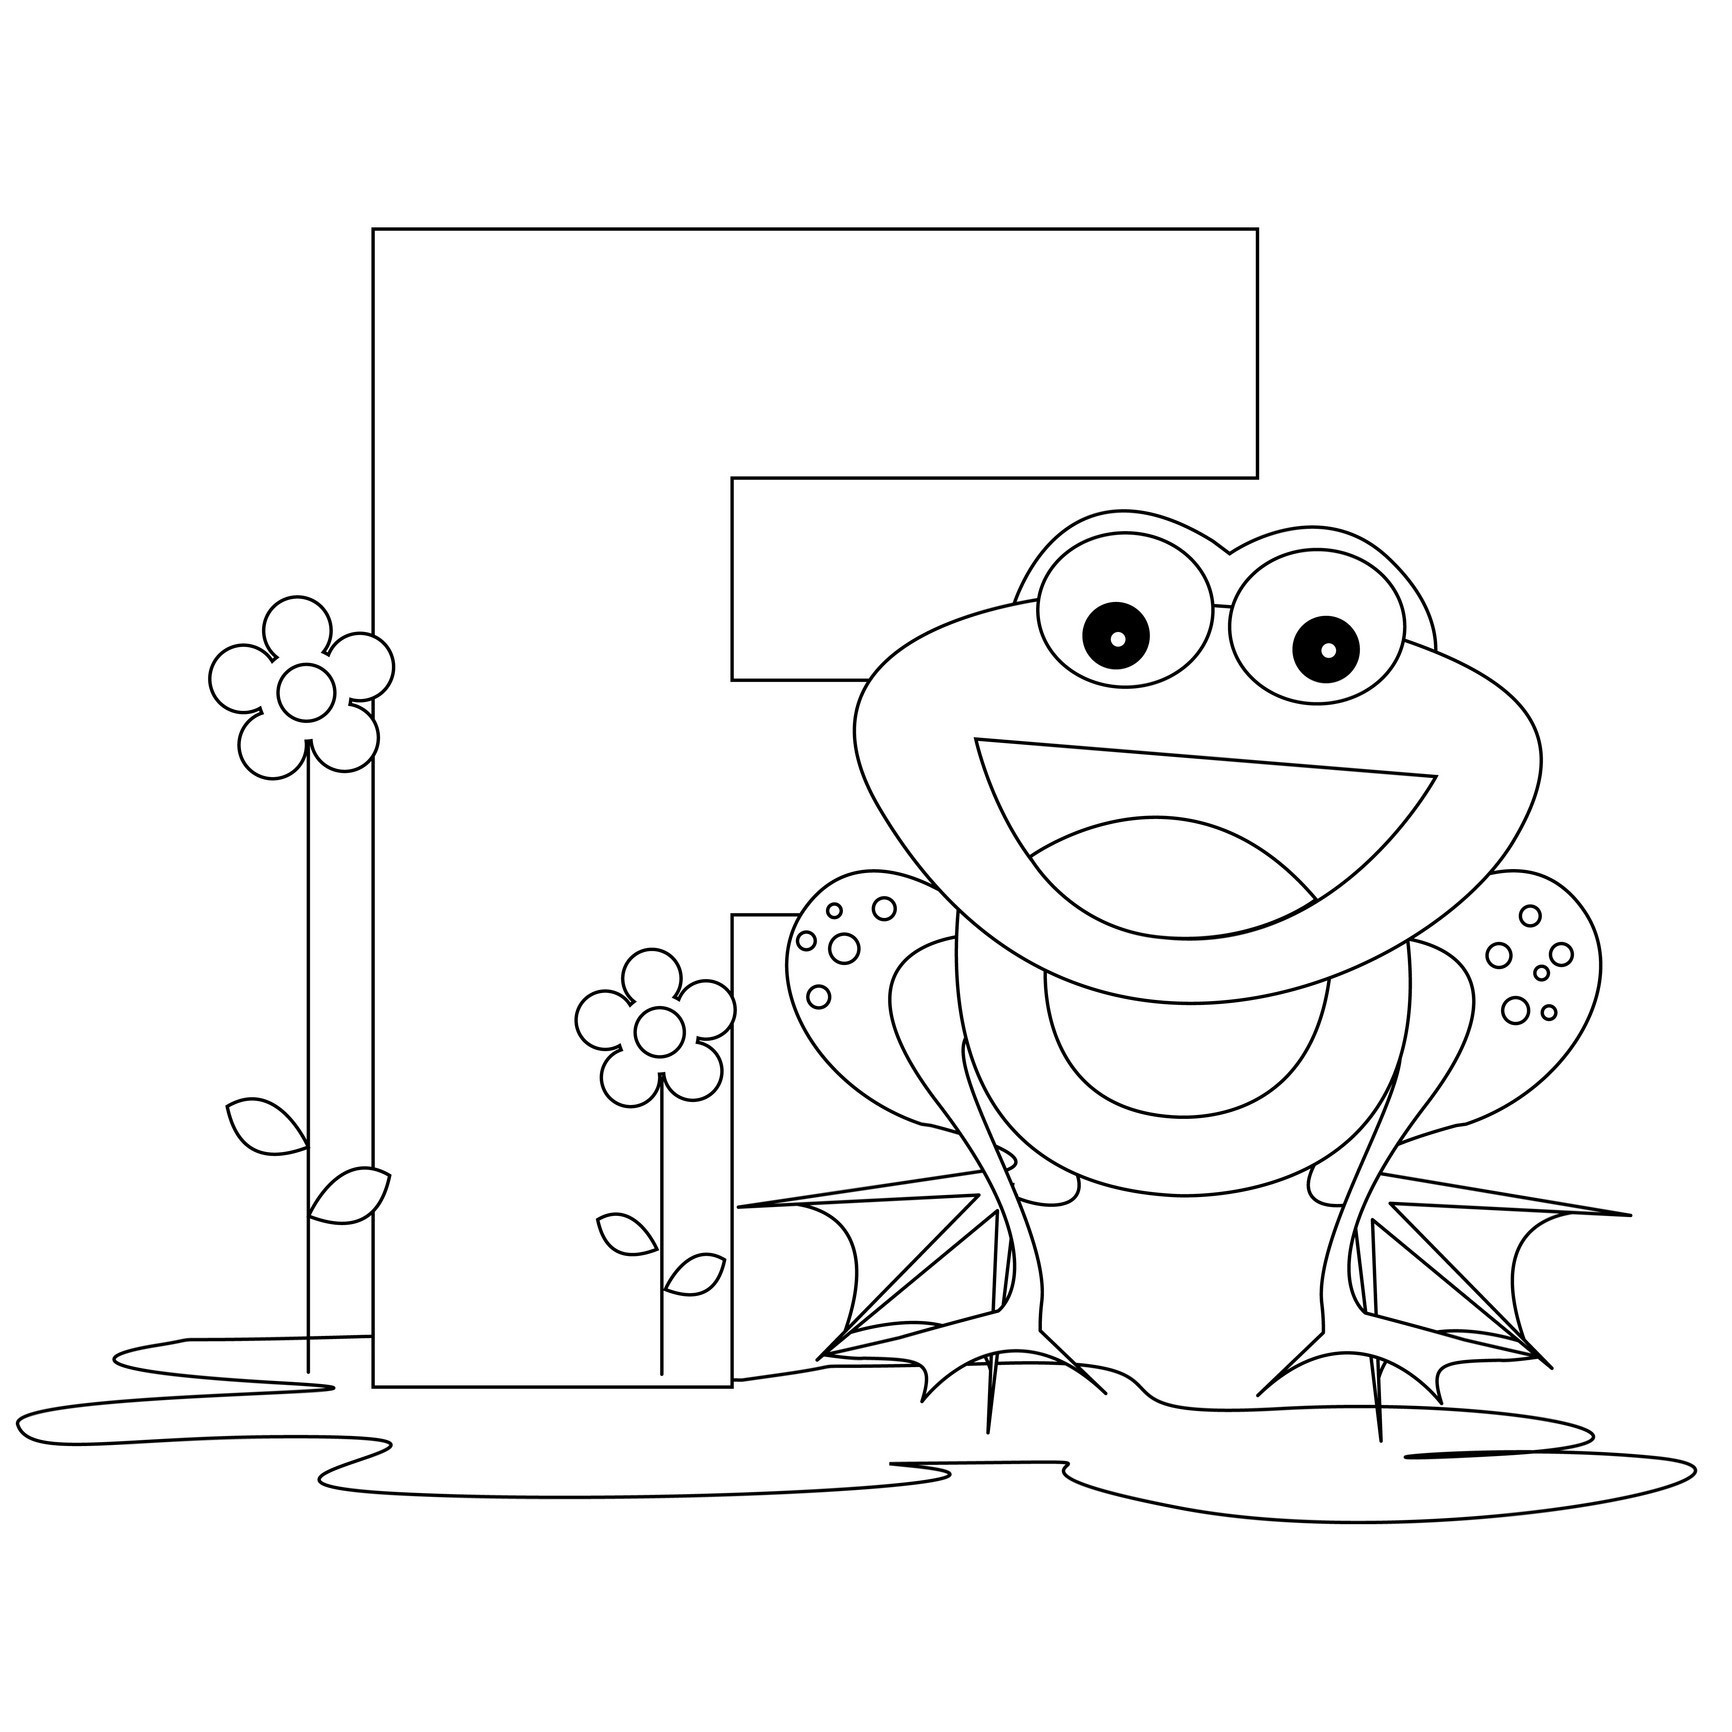 Coloring Alphabet Letters Printables Best Free Printable Alphabet - Free Printable Alphabet Letters Coloring Pages